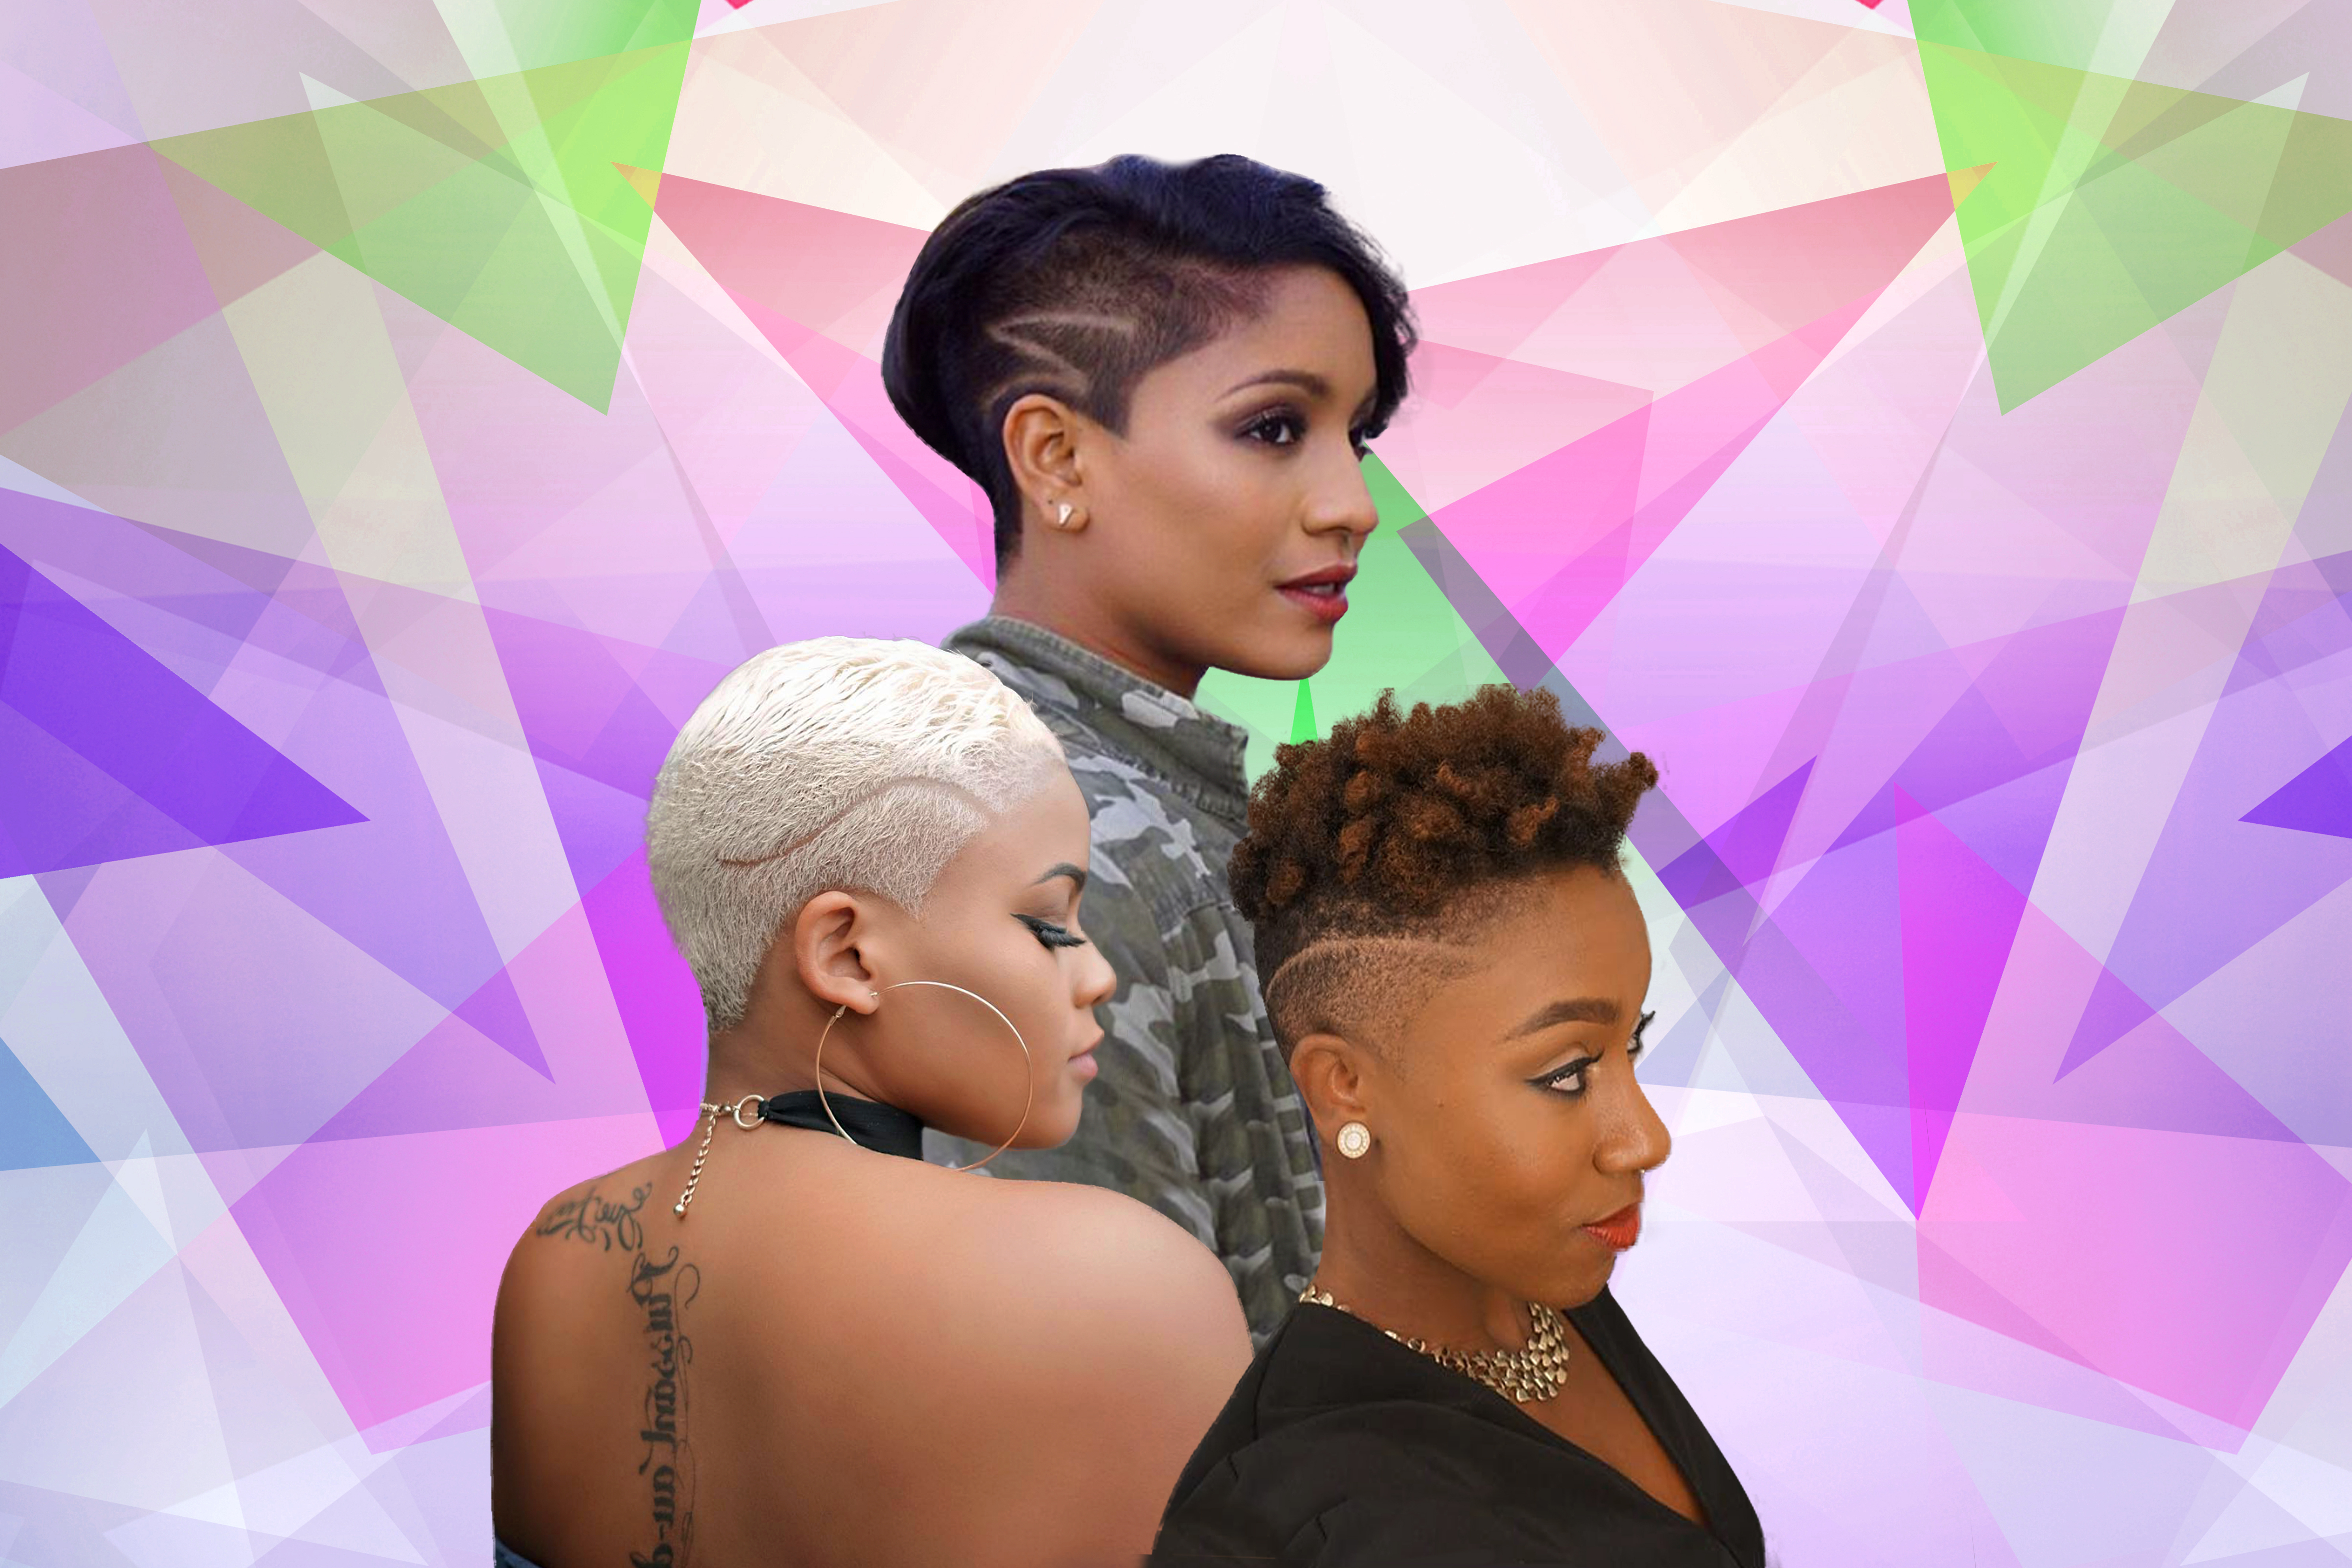 Short Haircut Designs Your Barber Needs To See – Essence Within Short Haircuts That Cover Your Ears (View 15 of 25)